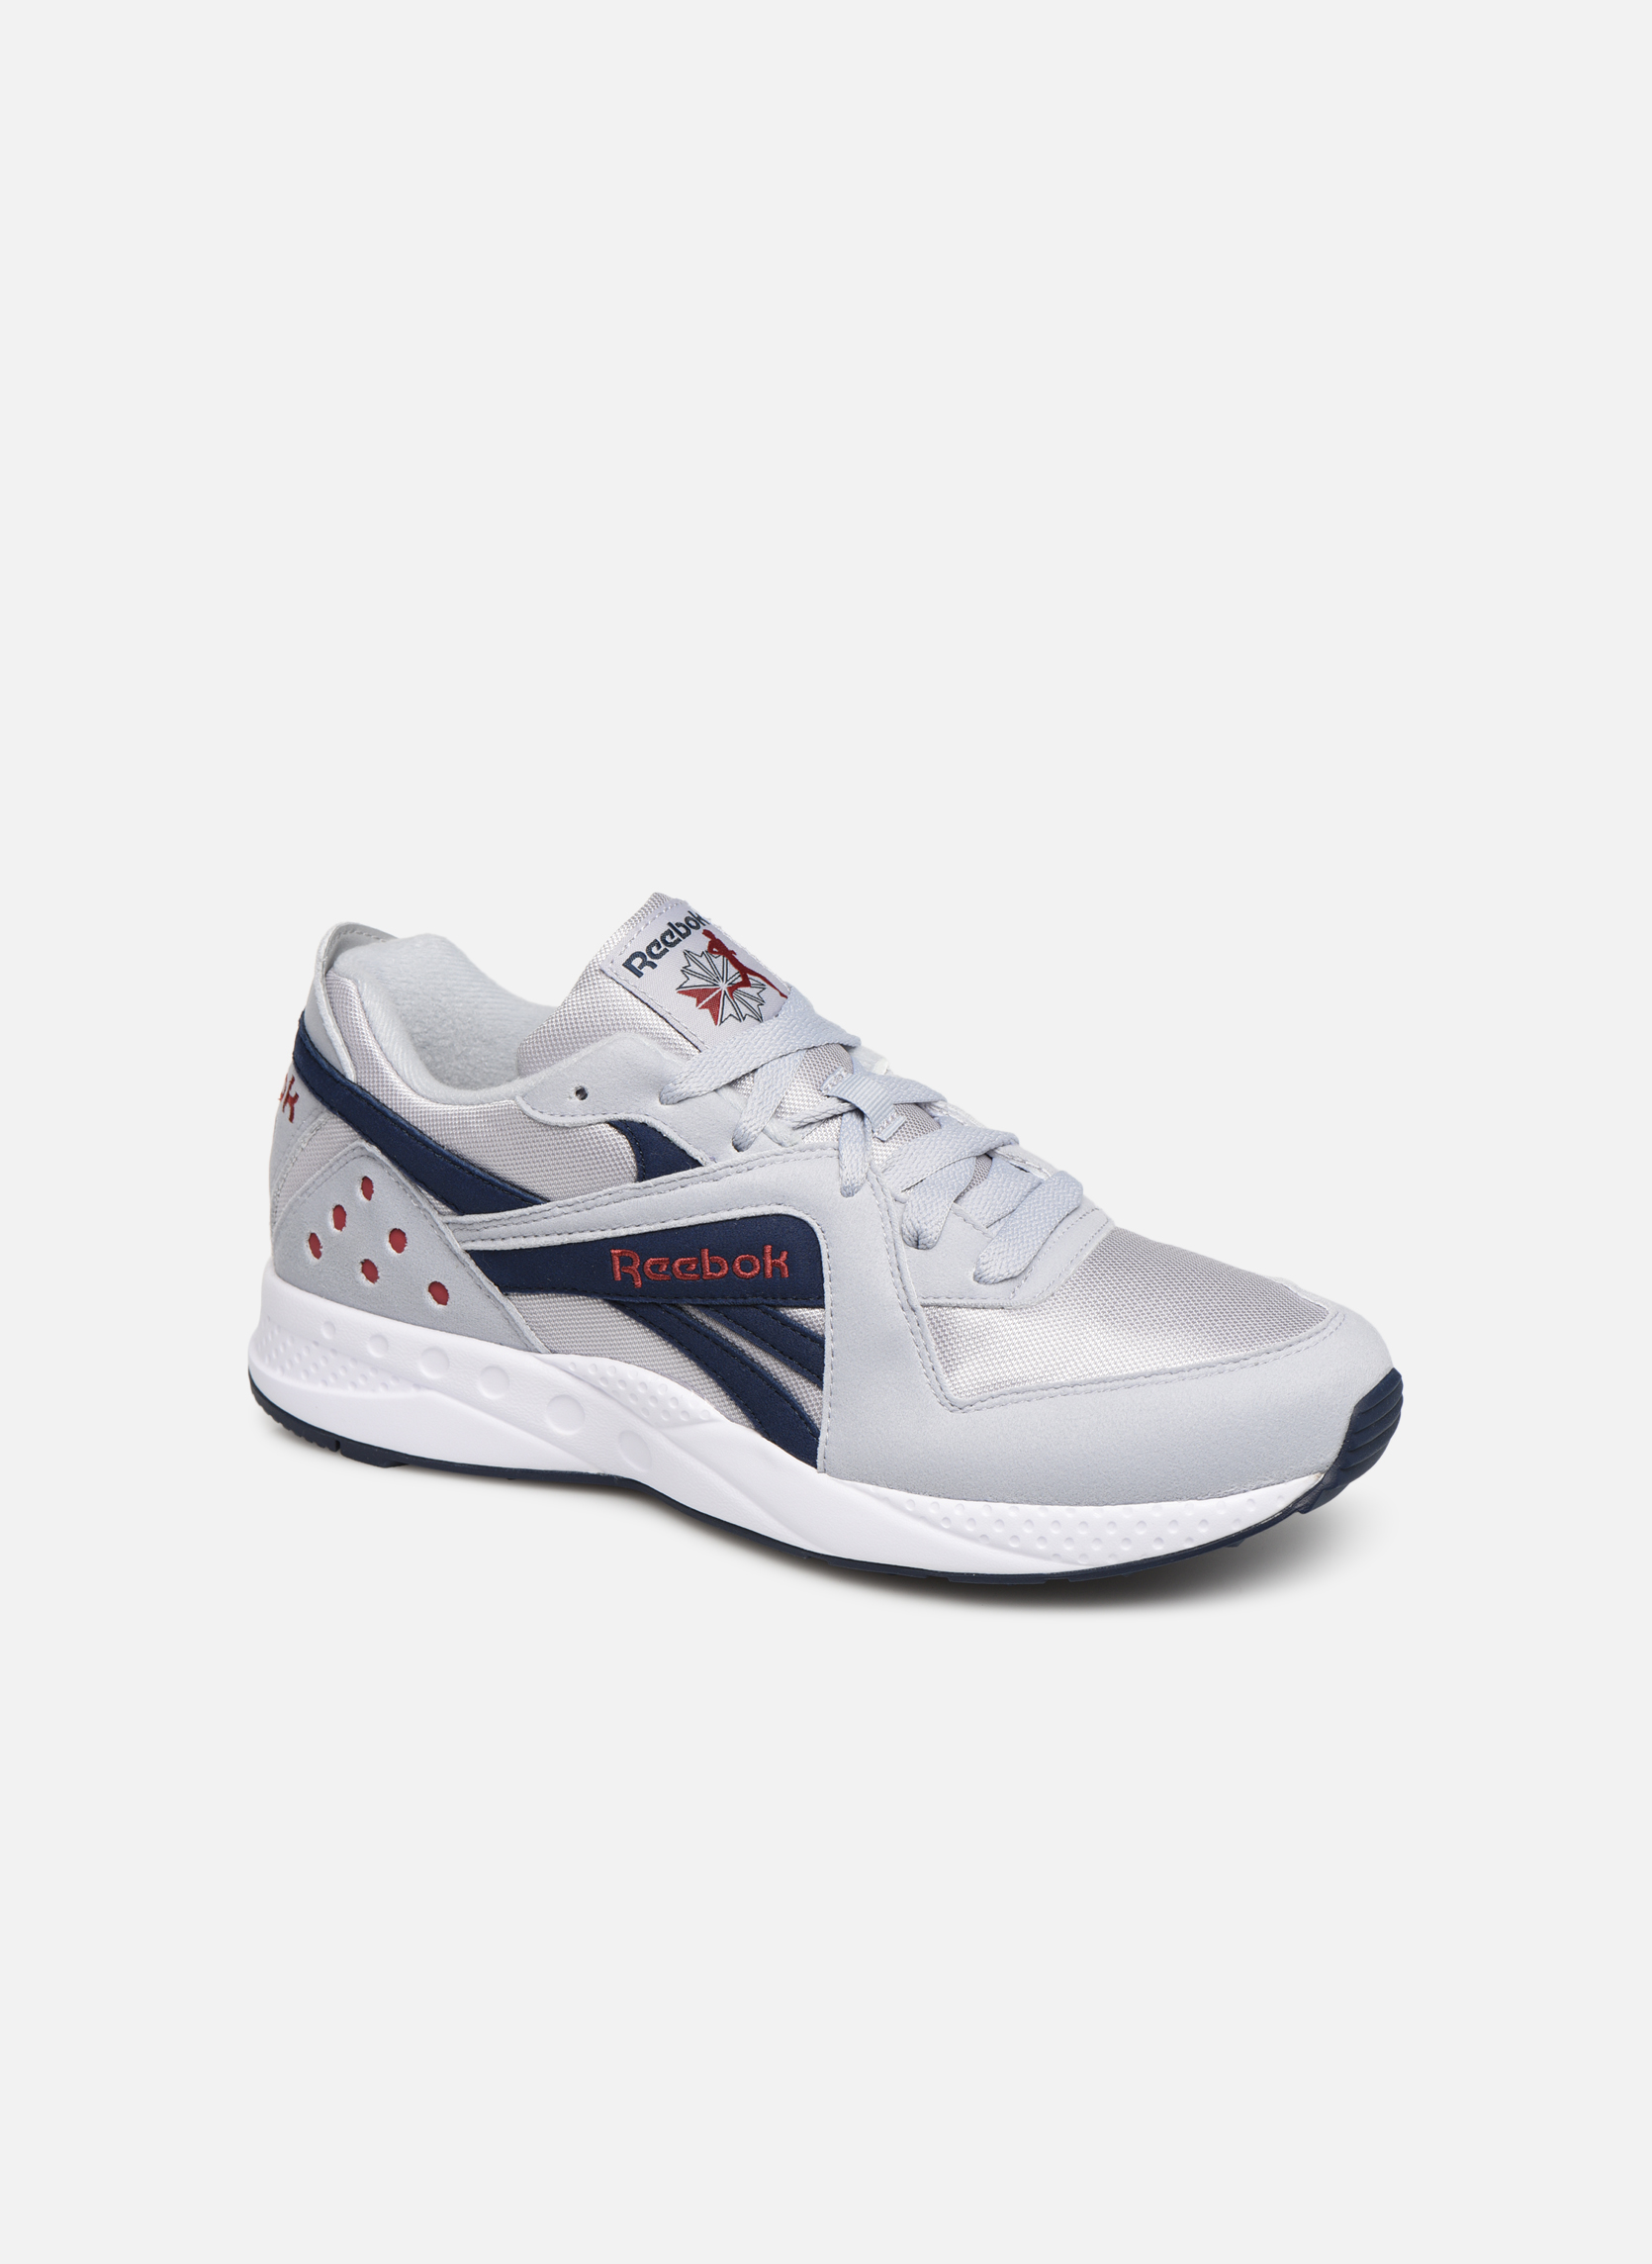 Sneakers Pyro M by Reebok